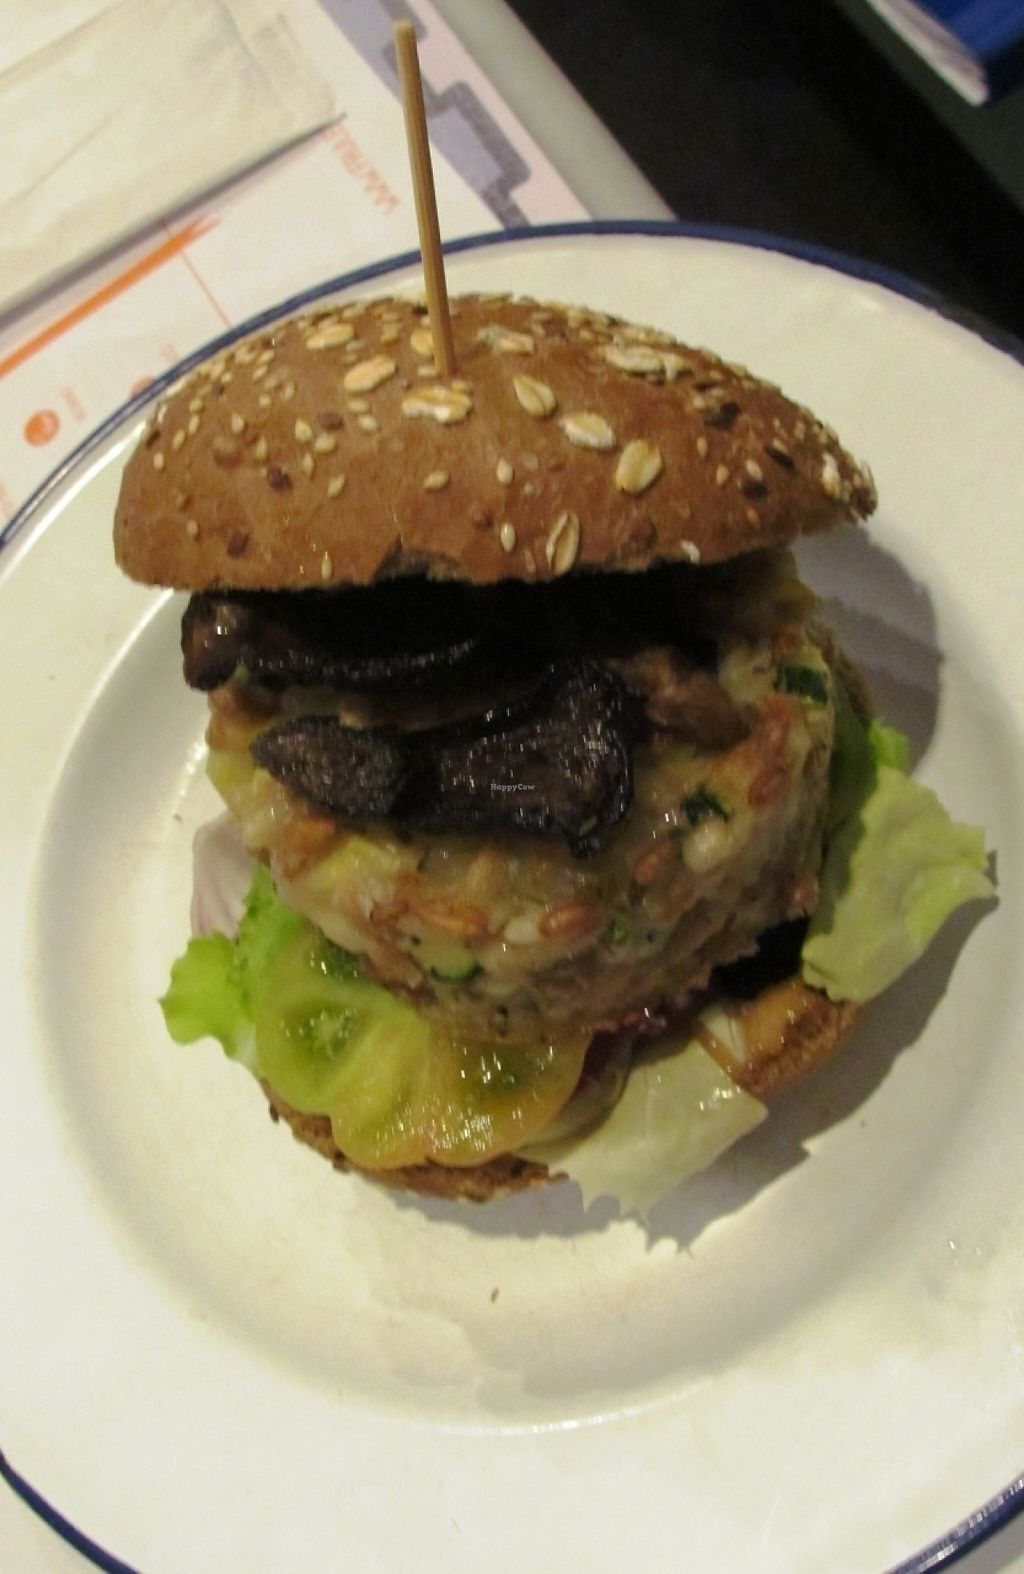 "Photo of Frulez  by <a href=""/members/profile/Chris%20Phillips%20Vegan"">Chris Phillips Vegan</a> <br/>My Burger <br/> April 19, 2016  - <a href='/contact/abuse/image/57869/209786'>Report</a>"